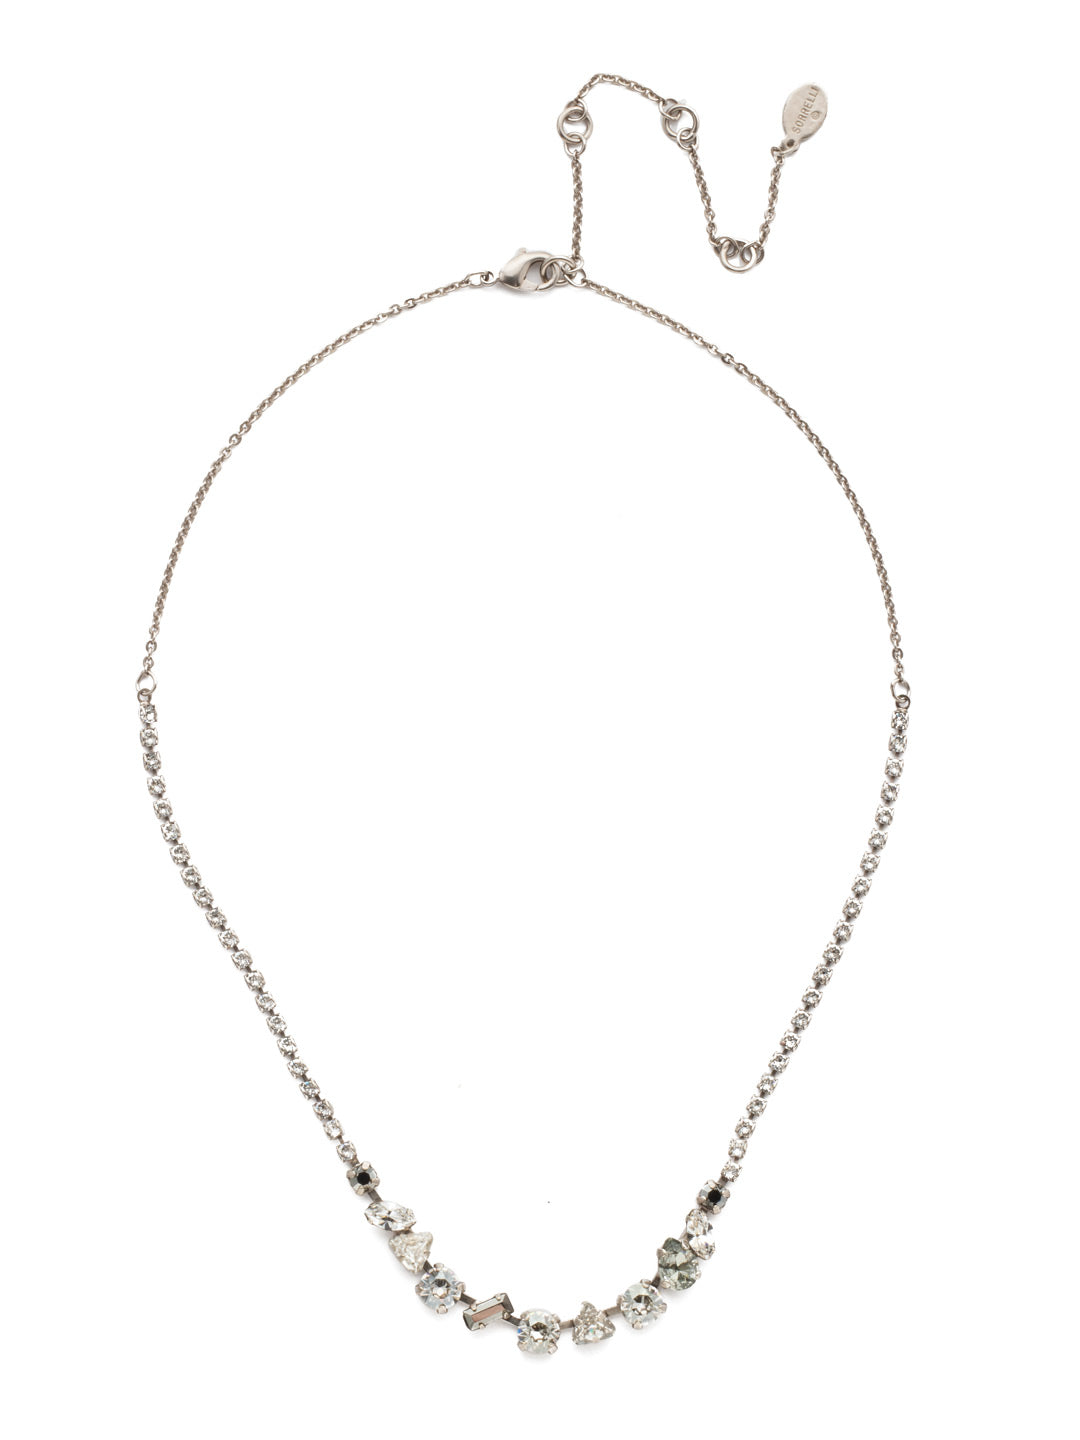 Cherished Tennis Necklace - NEK19ASCRO